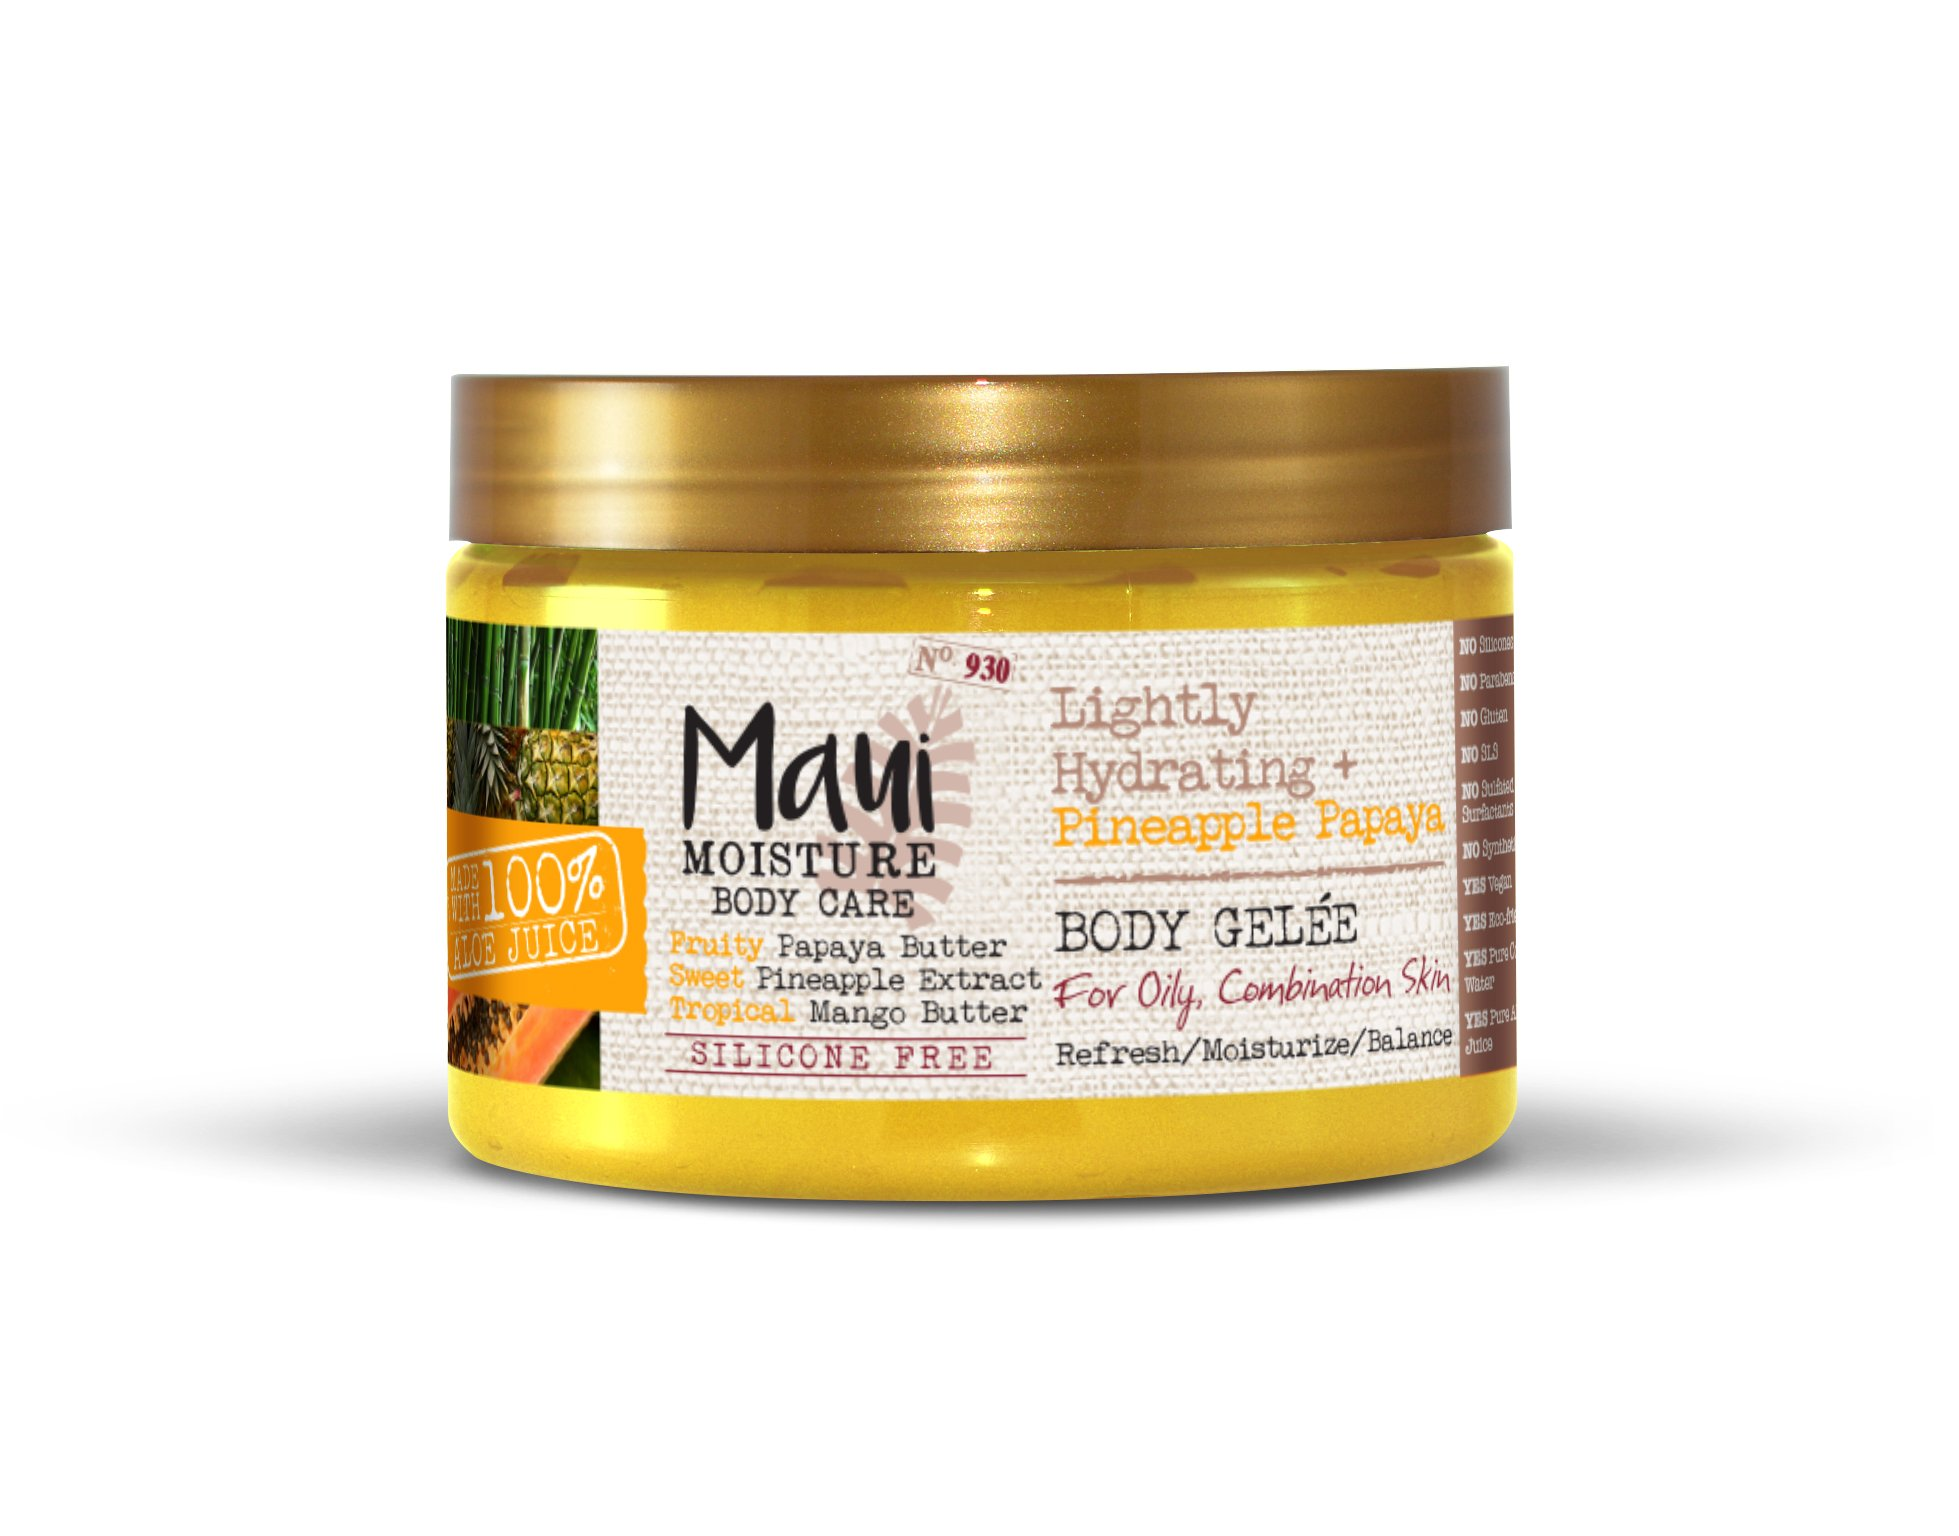 Maui Moisture Pineapple Papaya Creamy Body Gelee 12 Ounce Moisturizing Body Gelee Formulated for Oily Skin Normal Skin Combination Skin, with Aloe Vera Juice and Coconut Water, Silicone Free